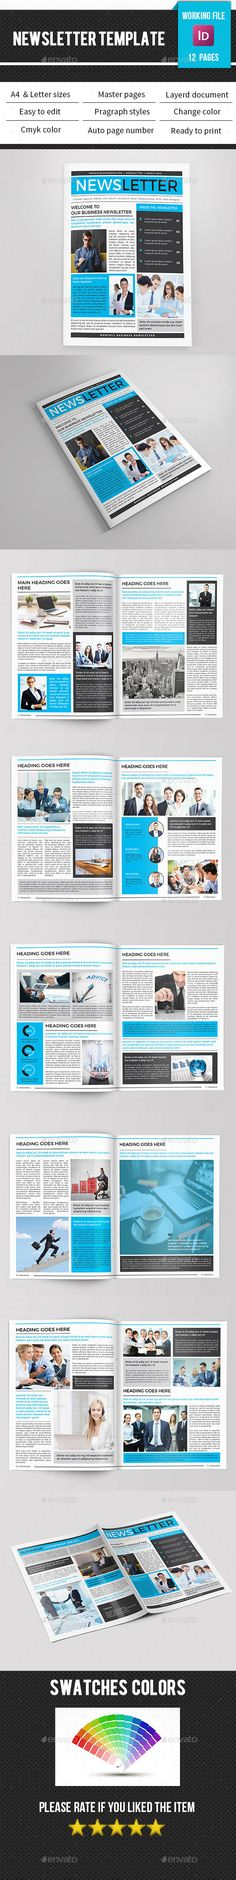 Model Agency A Newsletter Template   Newsletter Templates